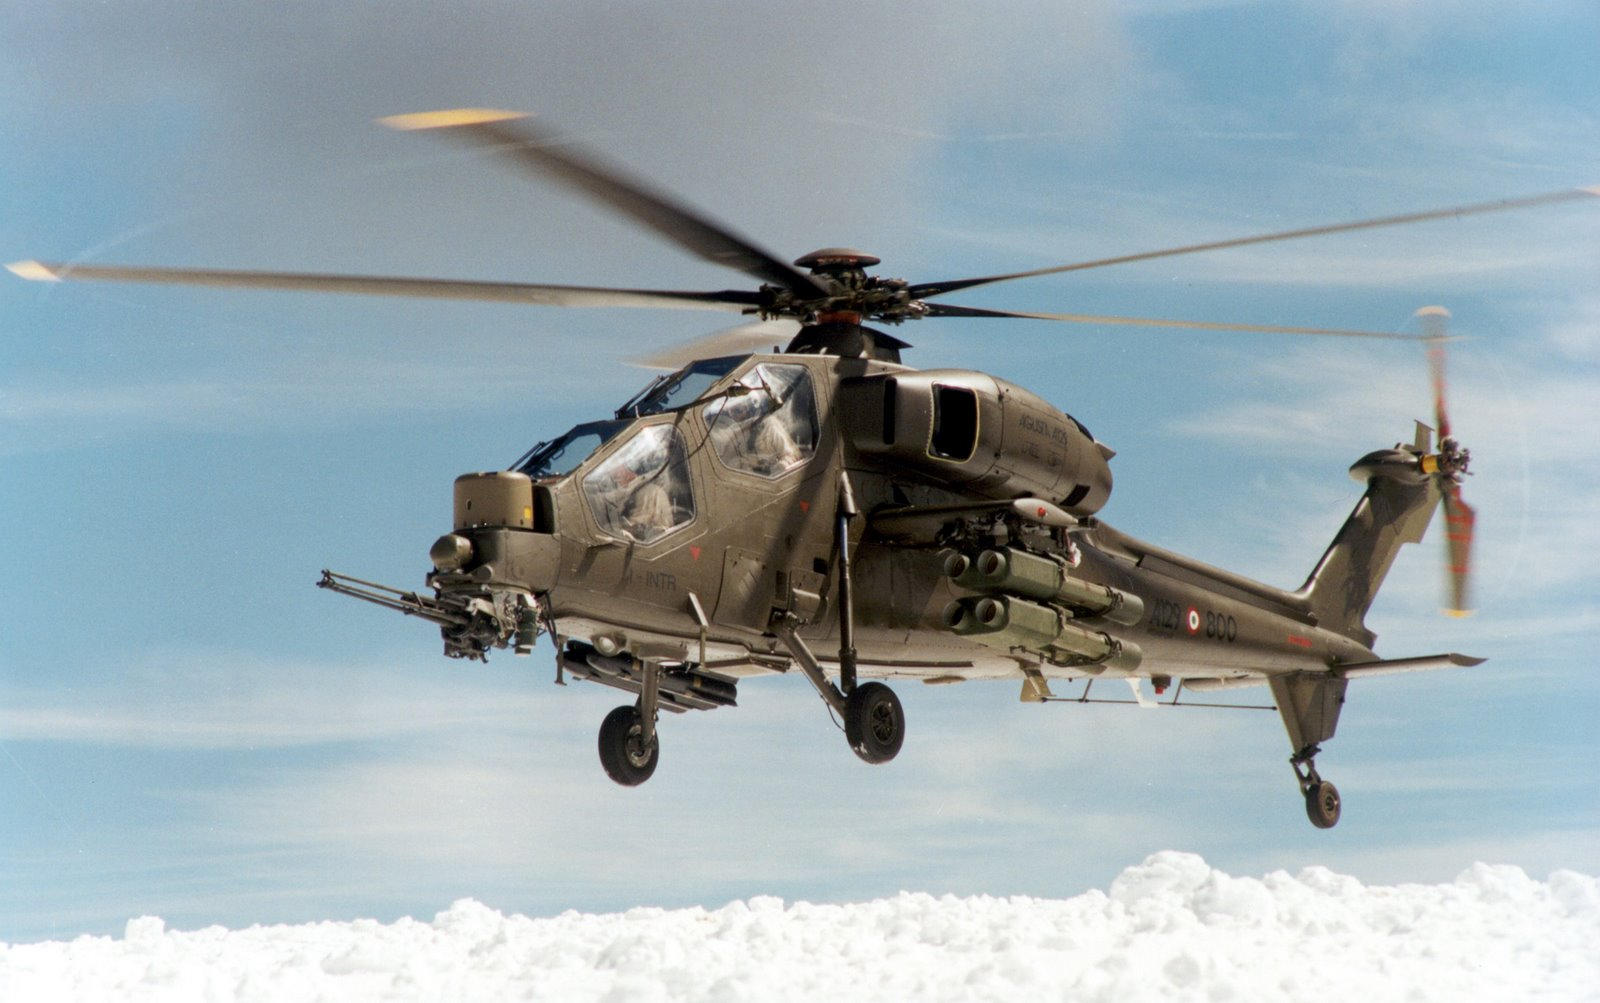 Helicopters_wallpapers_342